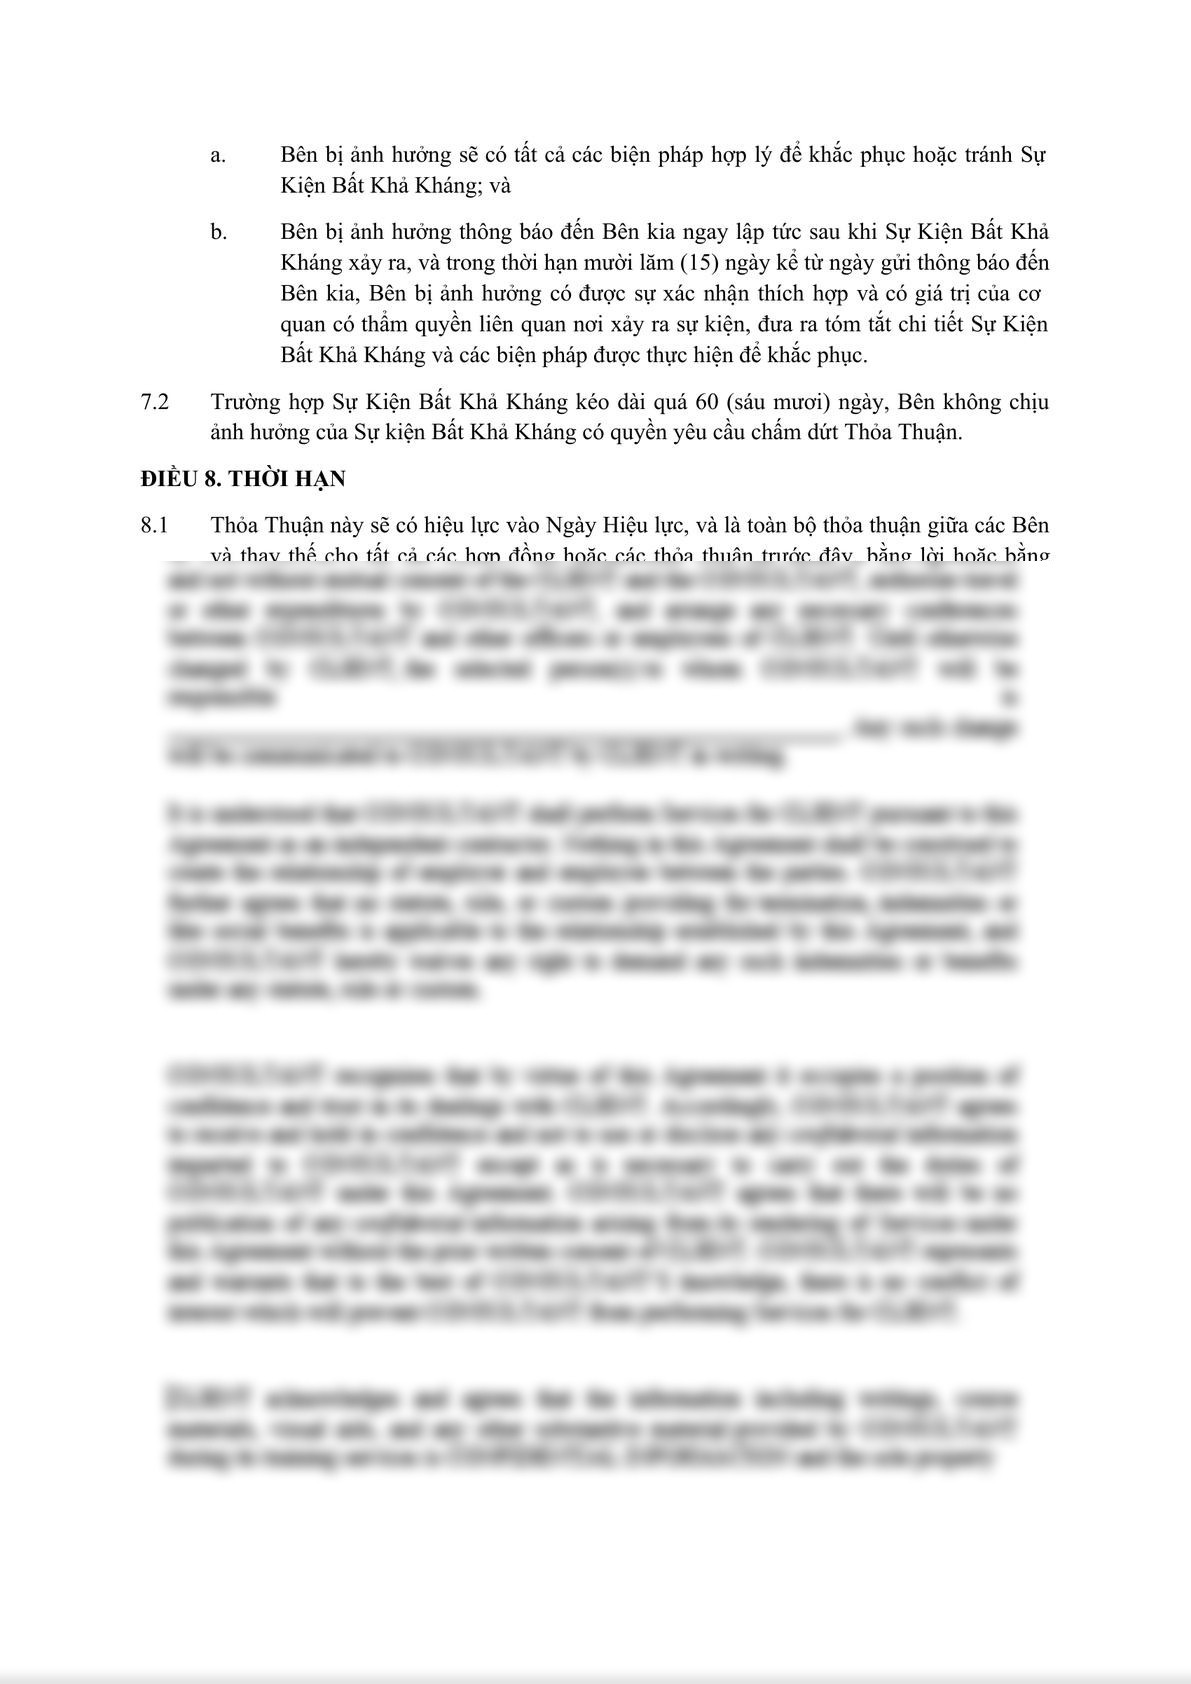 Master project collaboration agreement-6